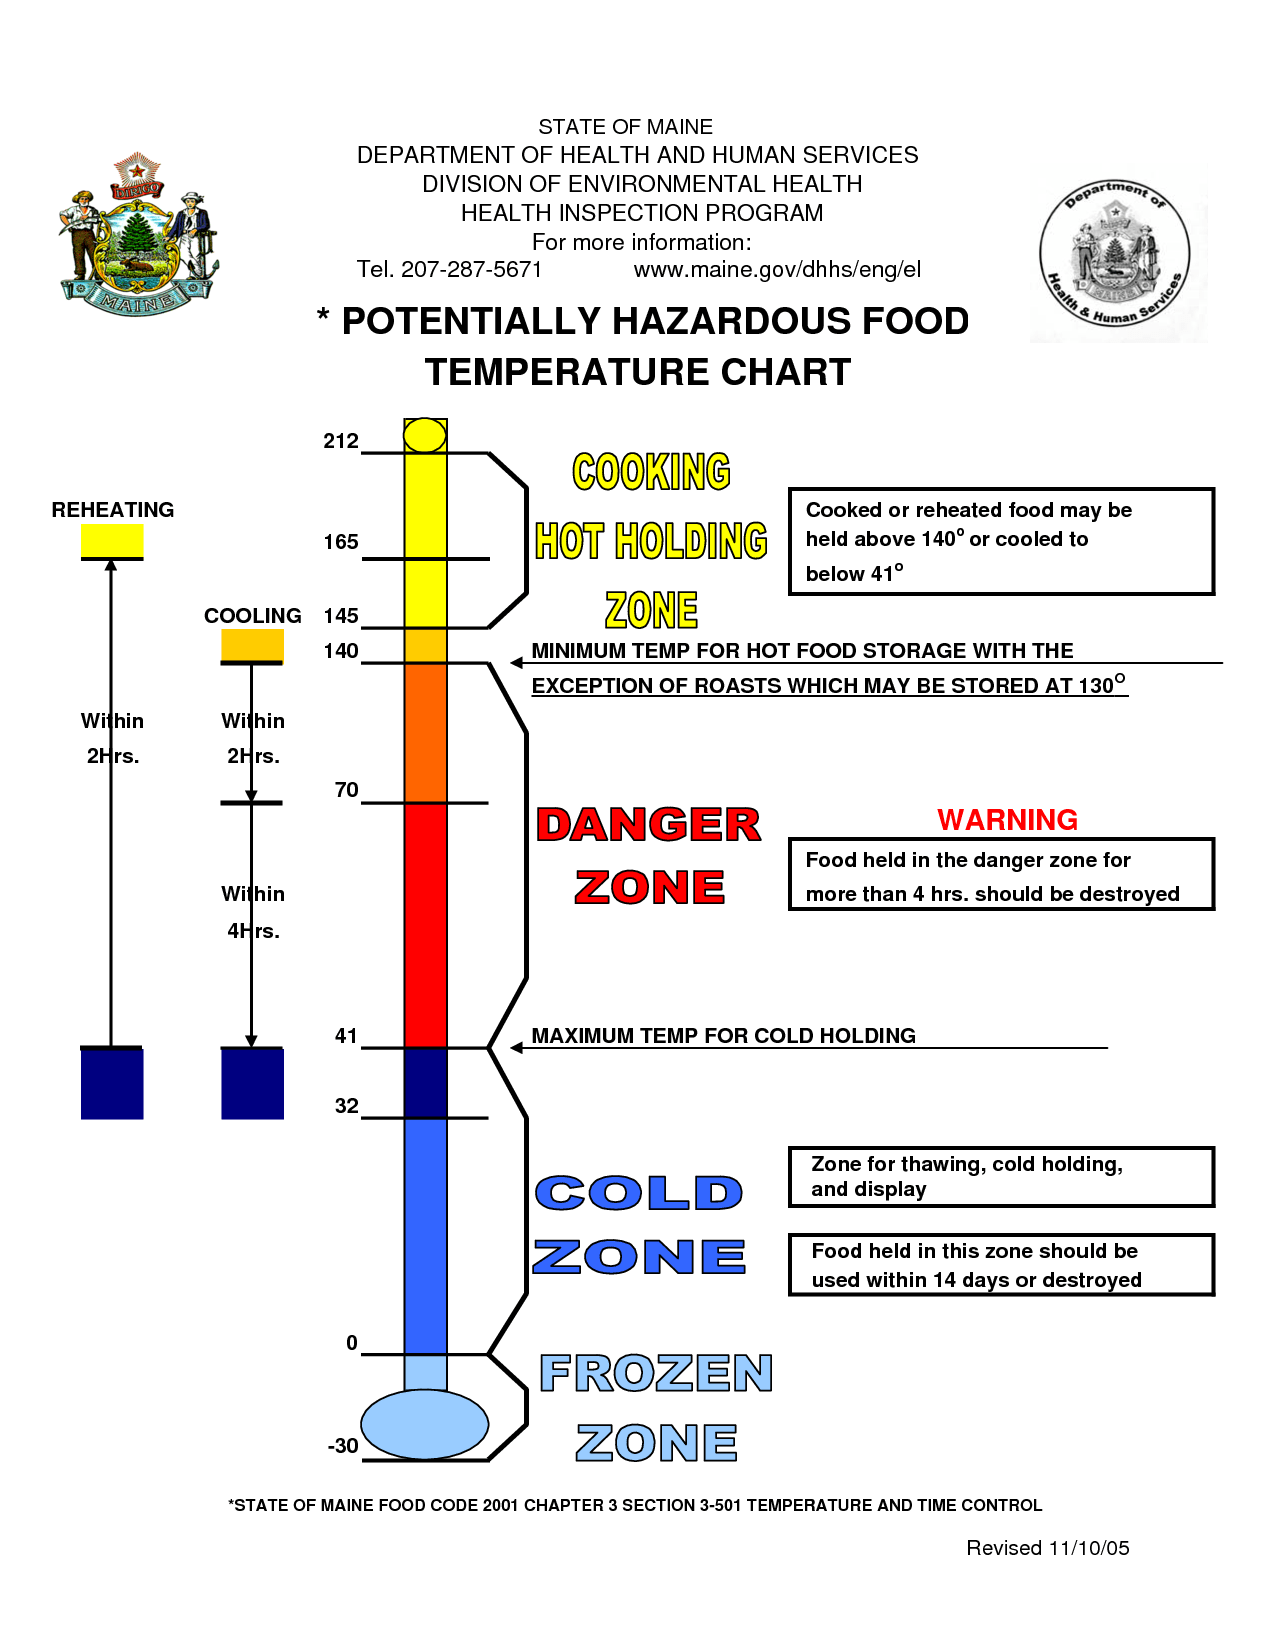 Temperature Chart Template POTENTIALLY HAZARDOUS FOOD